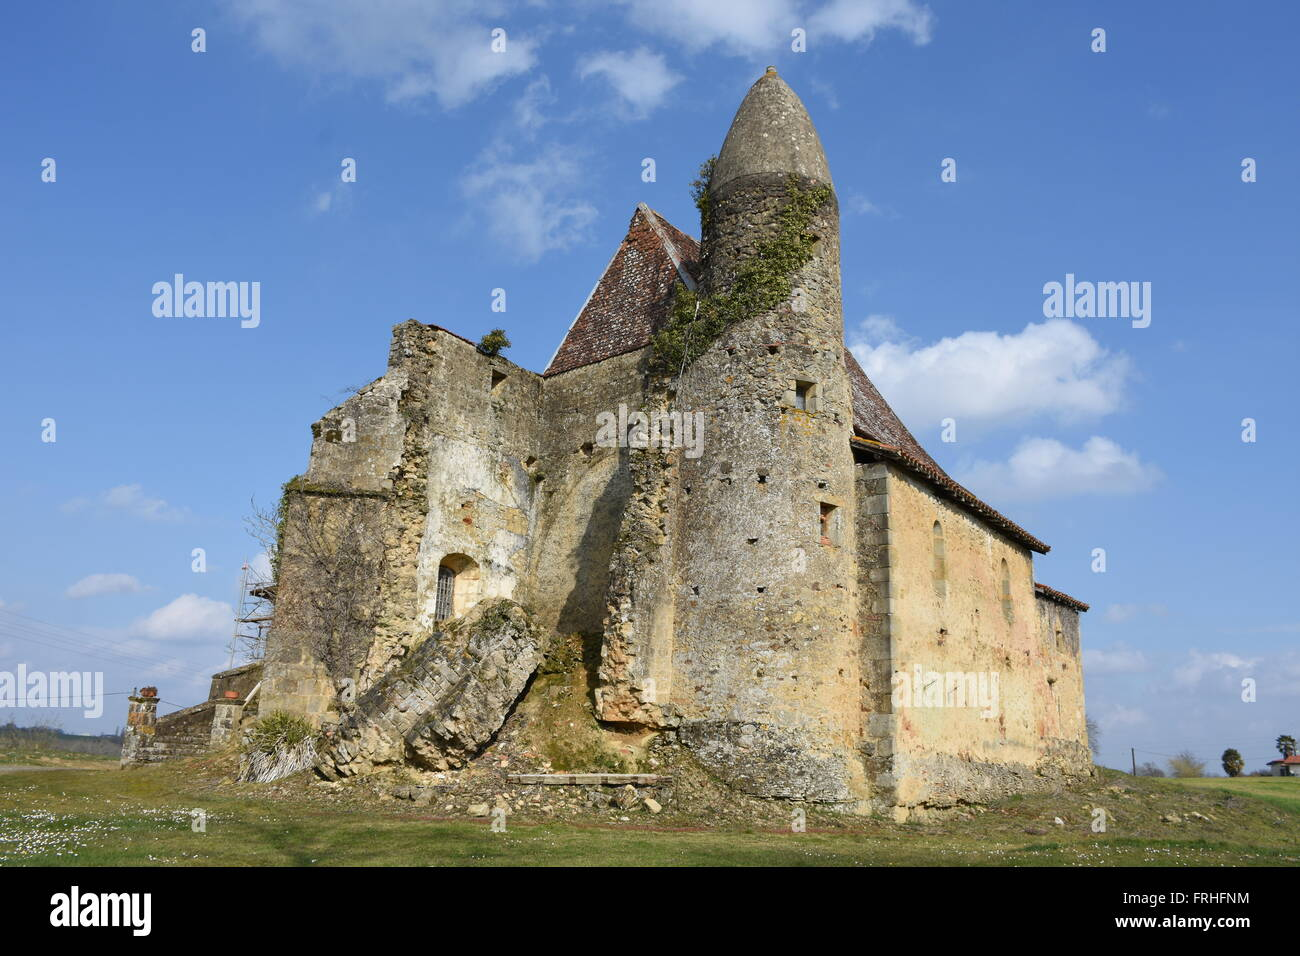 Mauriet ruined church Gers France - Stock Image